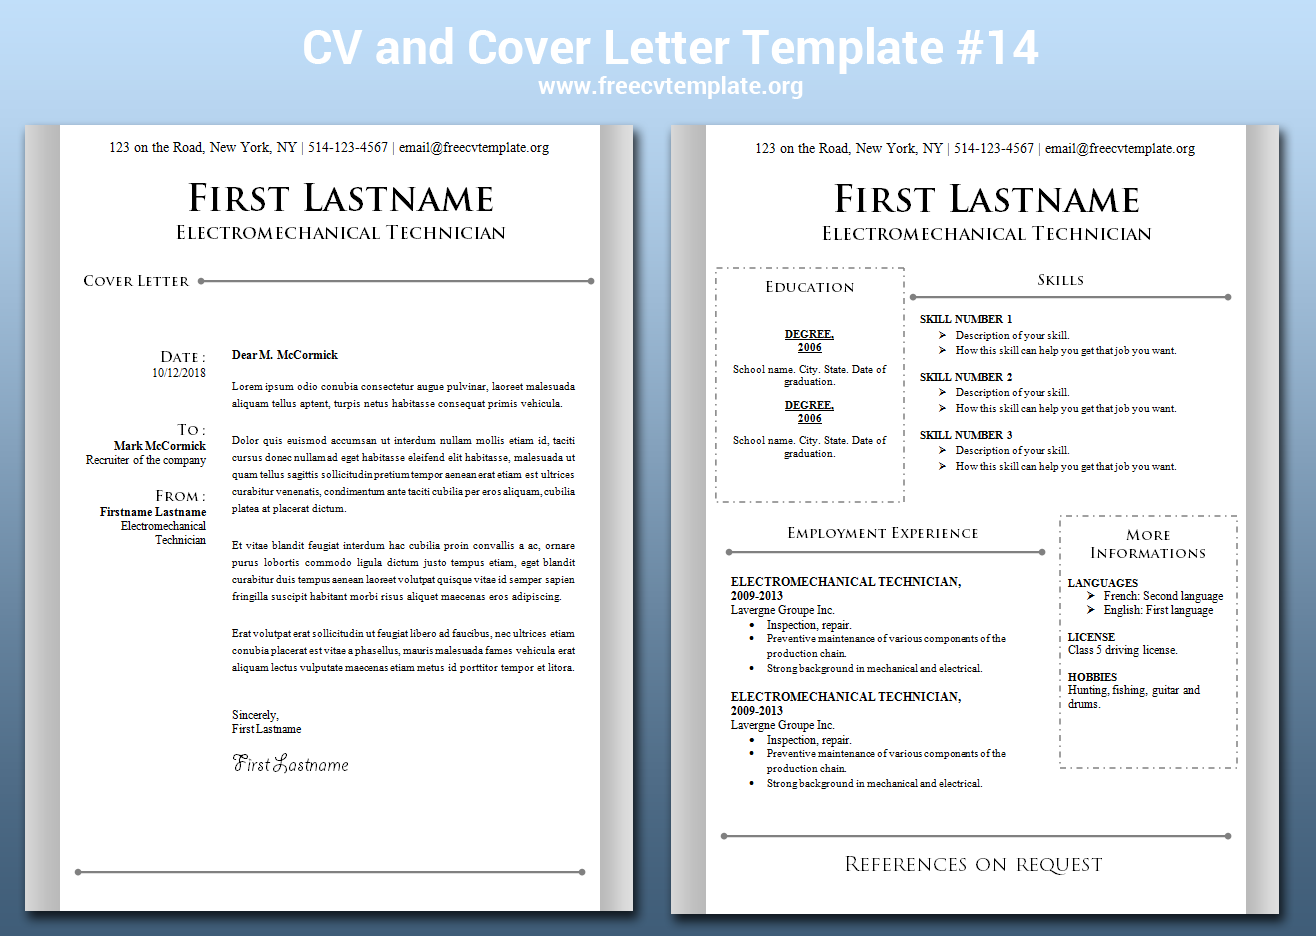 CV and Cover Letter Bundle #14